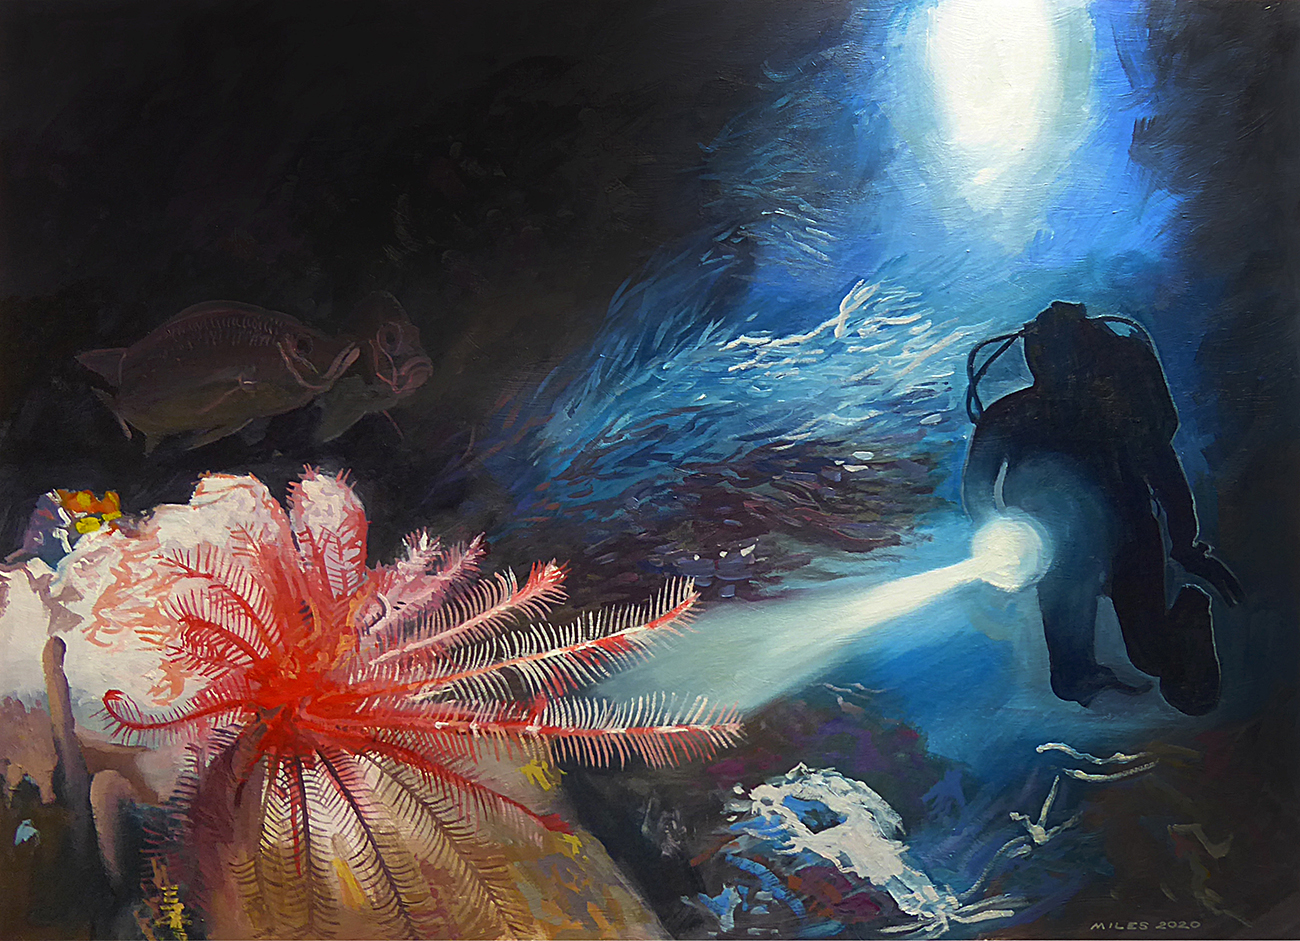 A featherstar caught in the glare of a diver's torch.